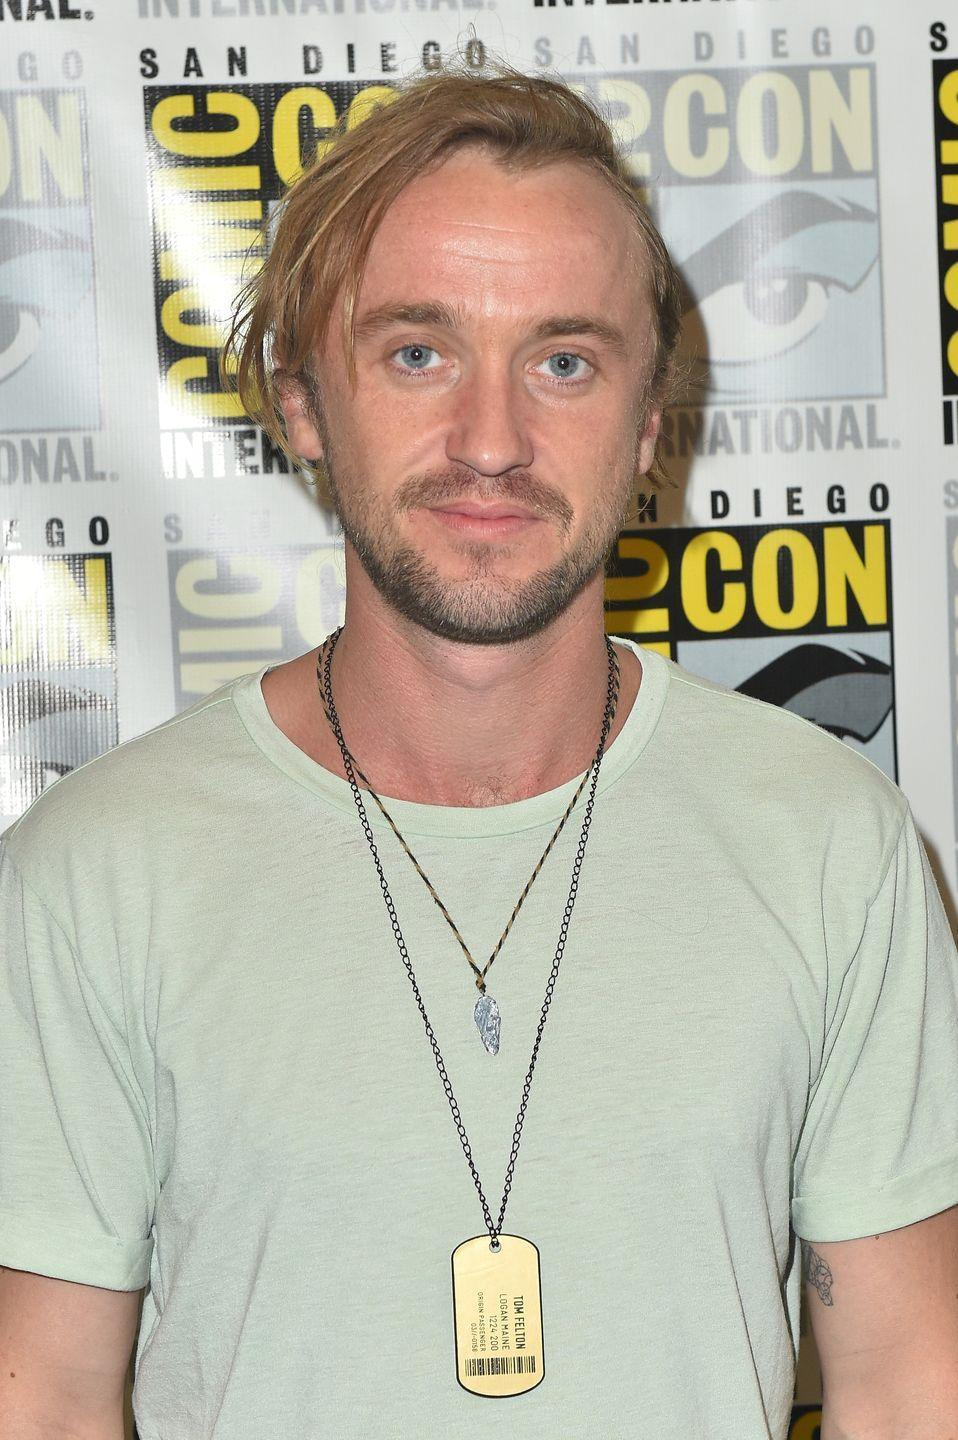 """<p><strong>The role: </strong><a href=""""http://www.mtv.com/news/1667231/harry-potter-deathly-hallows-tom-felton-casting/"""" rel=""""nofollow noopener"""" target=""""_blank"""" data-ylk=""""slk:Harry Potter and Ron Weasley"""" class=""""link rapid-noclick-resp"""">Harry Potter and Ron Weasley</a> in <em>Harry Potter</em></p><p><strong>Who *actually* played it:</strong> Daniel Radcliffe and Rupert Grint</p><p><strong>The role they played instead: </strong>Draco Malfoy</p><p>Felton auditioned for the title role of Harry and Ron before eventually getting cast as Draco. He has said that he's """"grateful"""" he was cast as Draco because he doesn't think anyone else could have done the job Radcliffe and Grint did.</p>"""